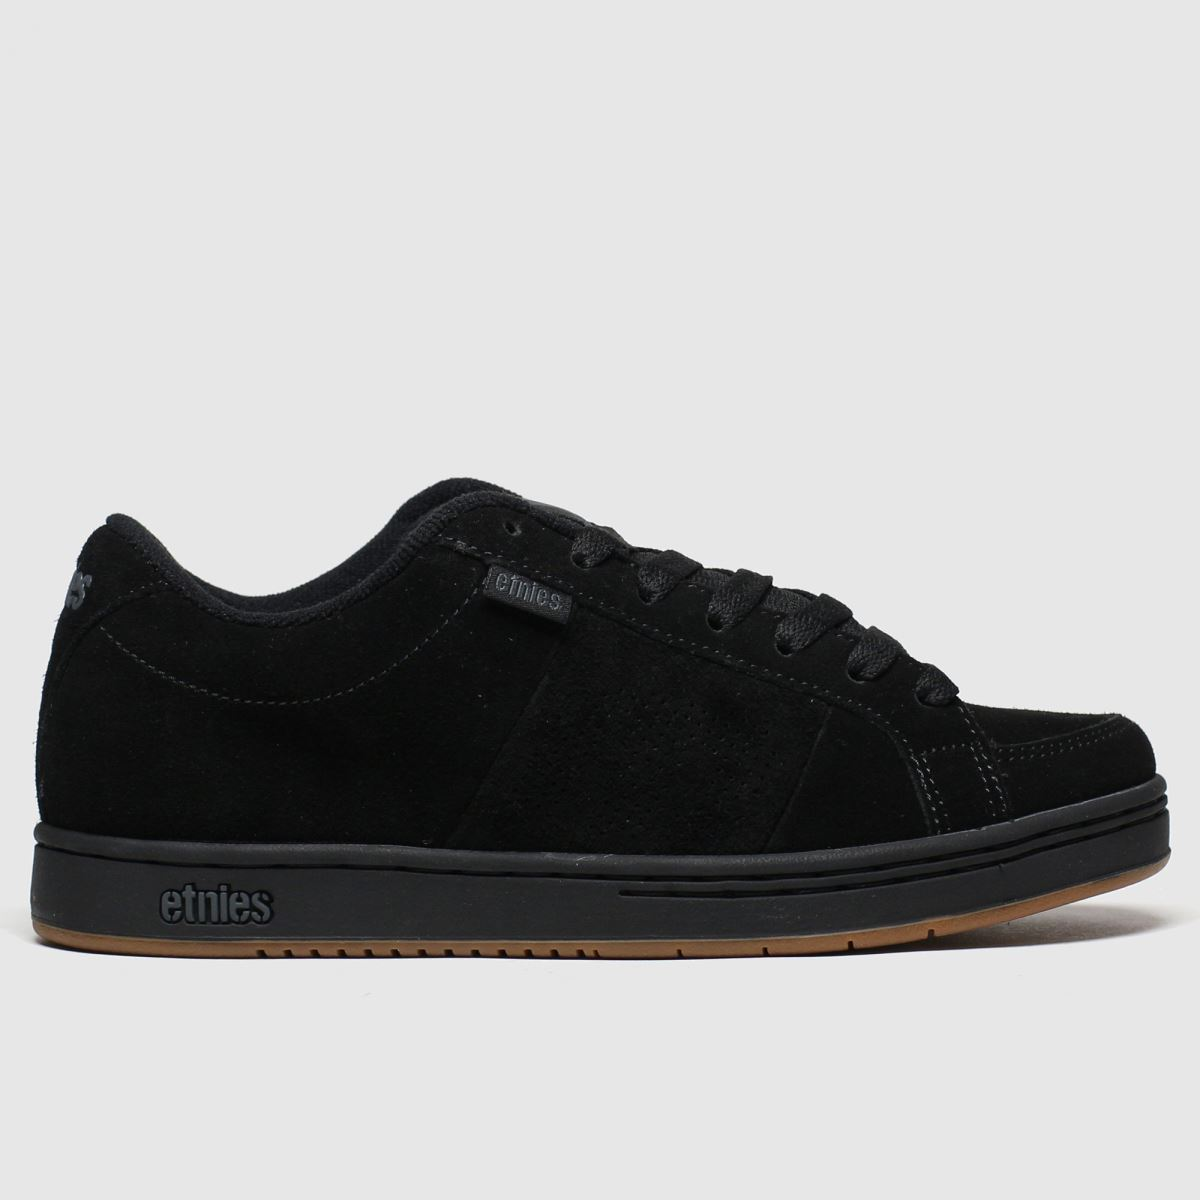 Etnies Etnies Black Kingpin Trainers